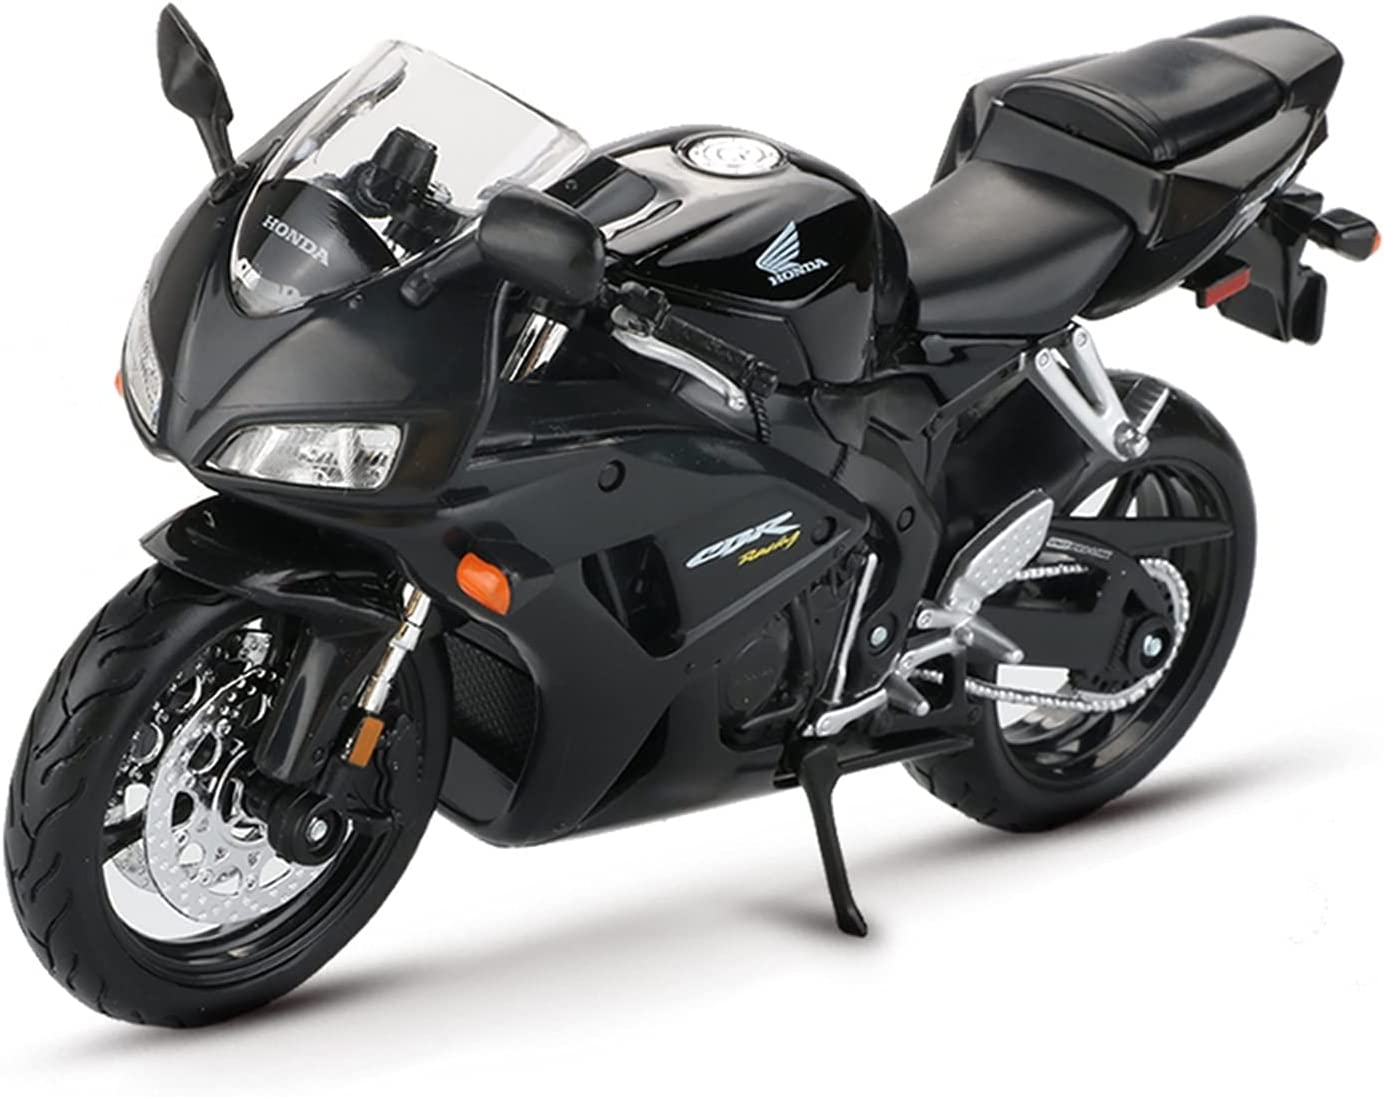 Motorcycle Alloy Decoration Toys 1:12 mart Honda for CBR1000RR Max 81% OFF Simula